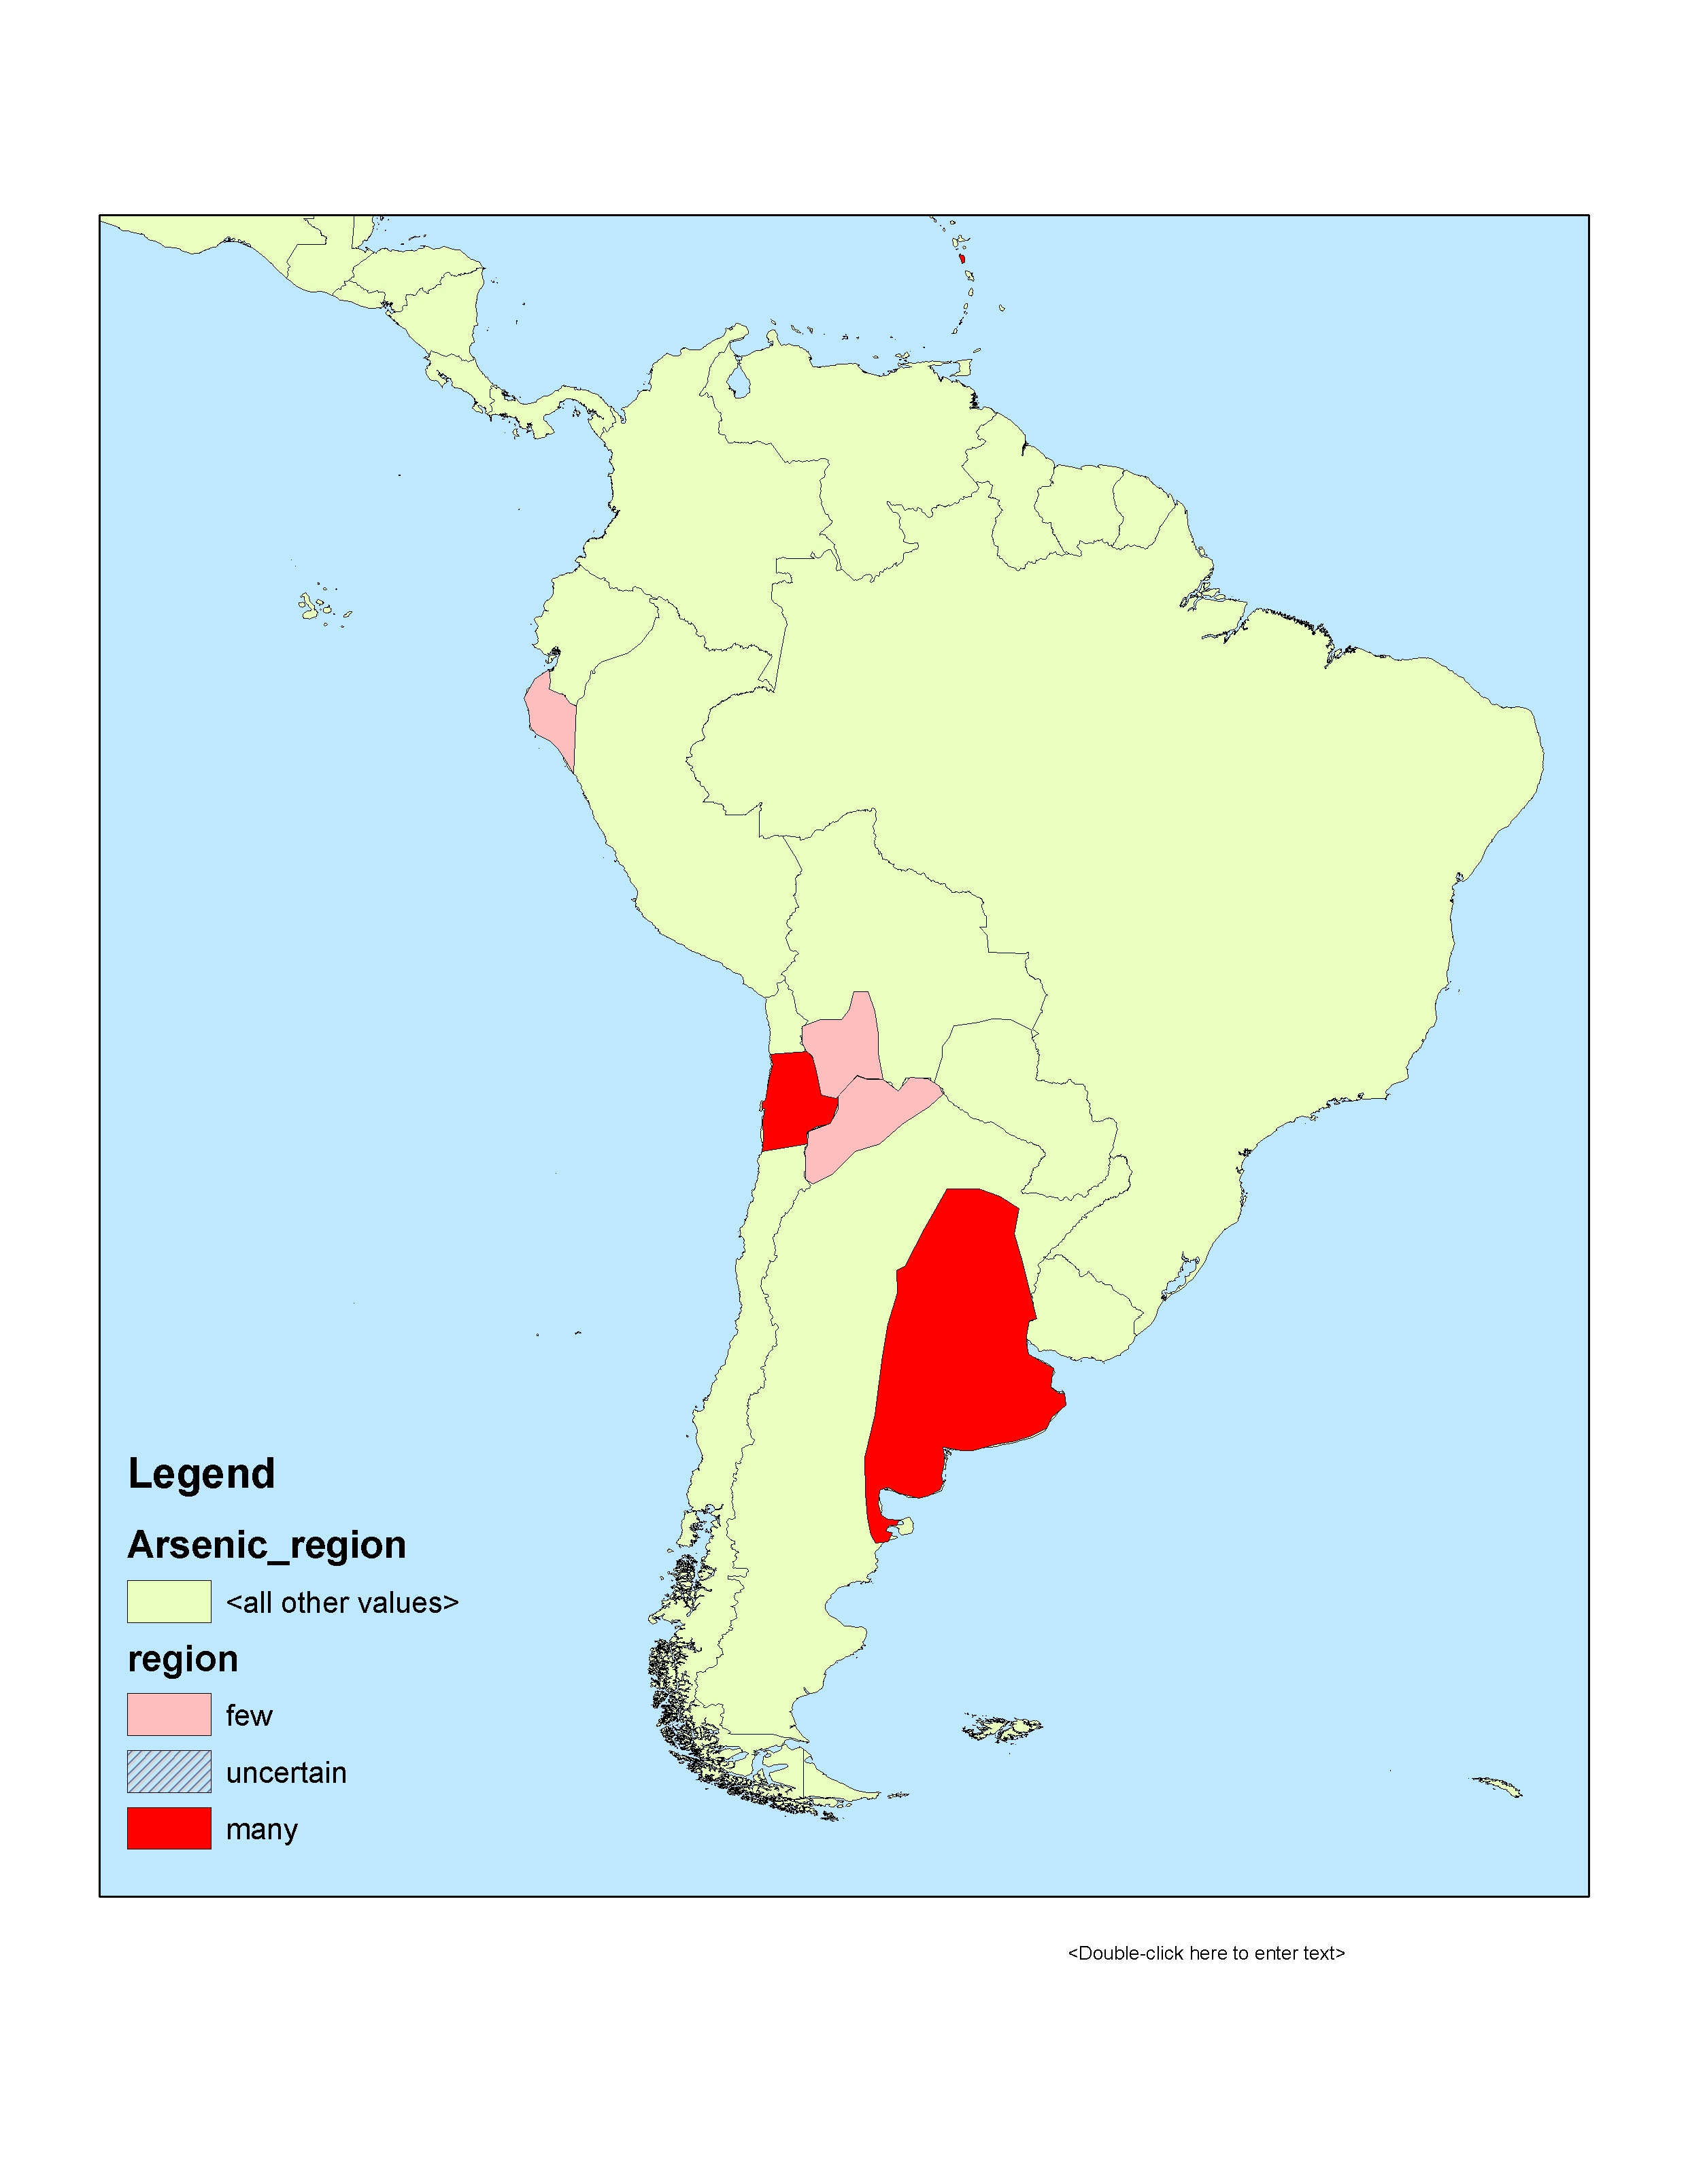 Arsenic in groundwater in South America